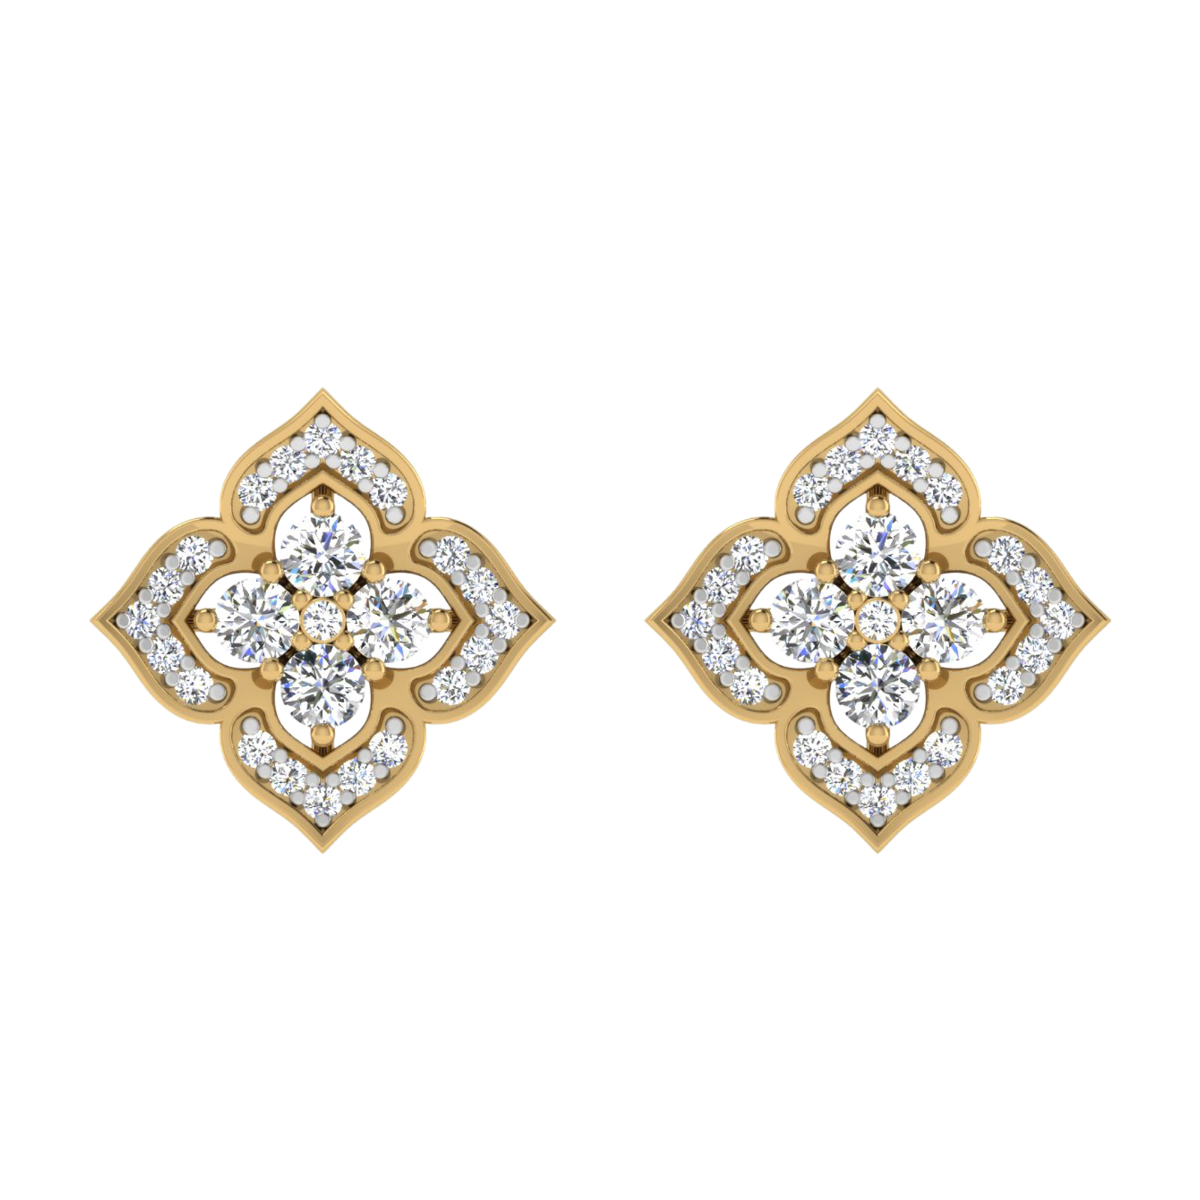 The Blossom Point Diamond Stud Earrings